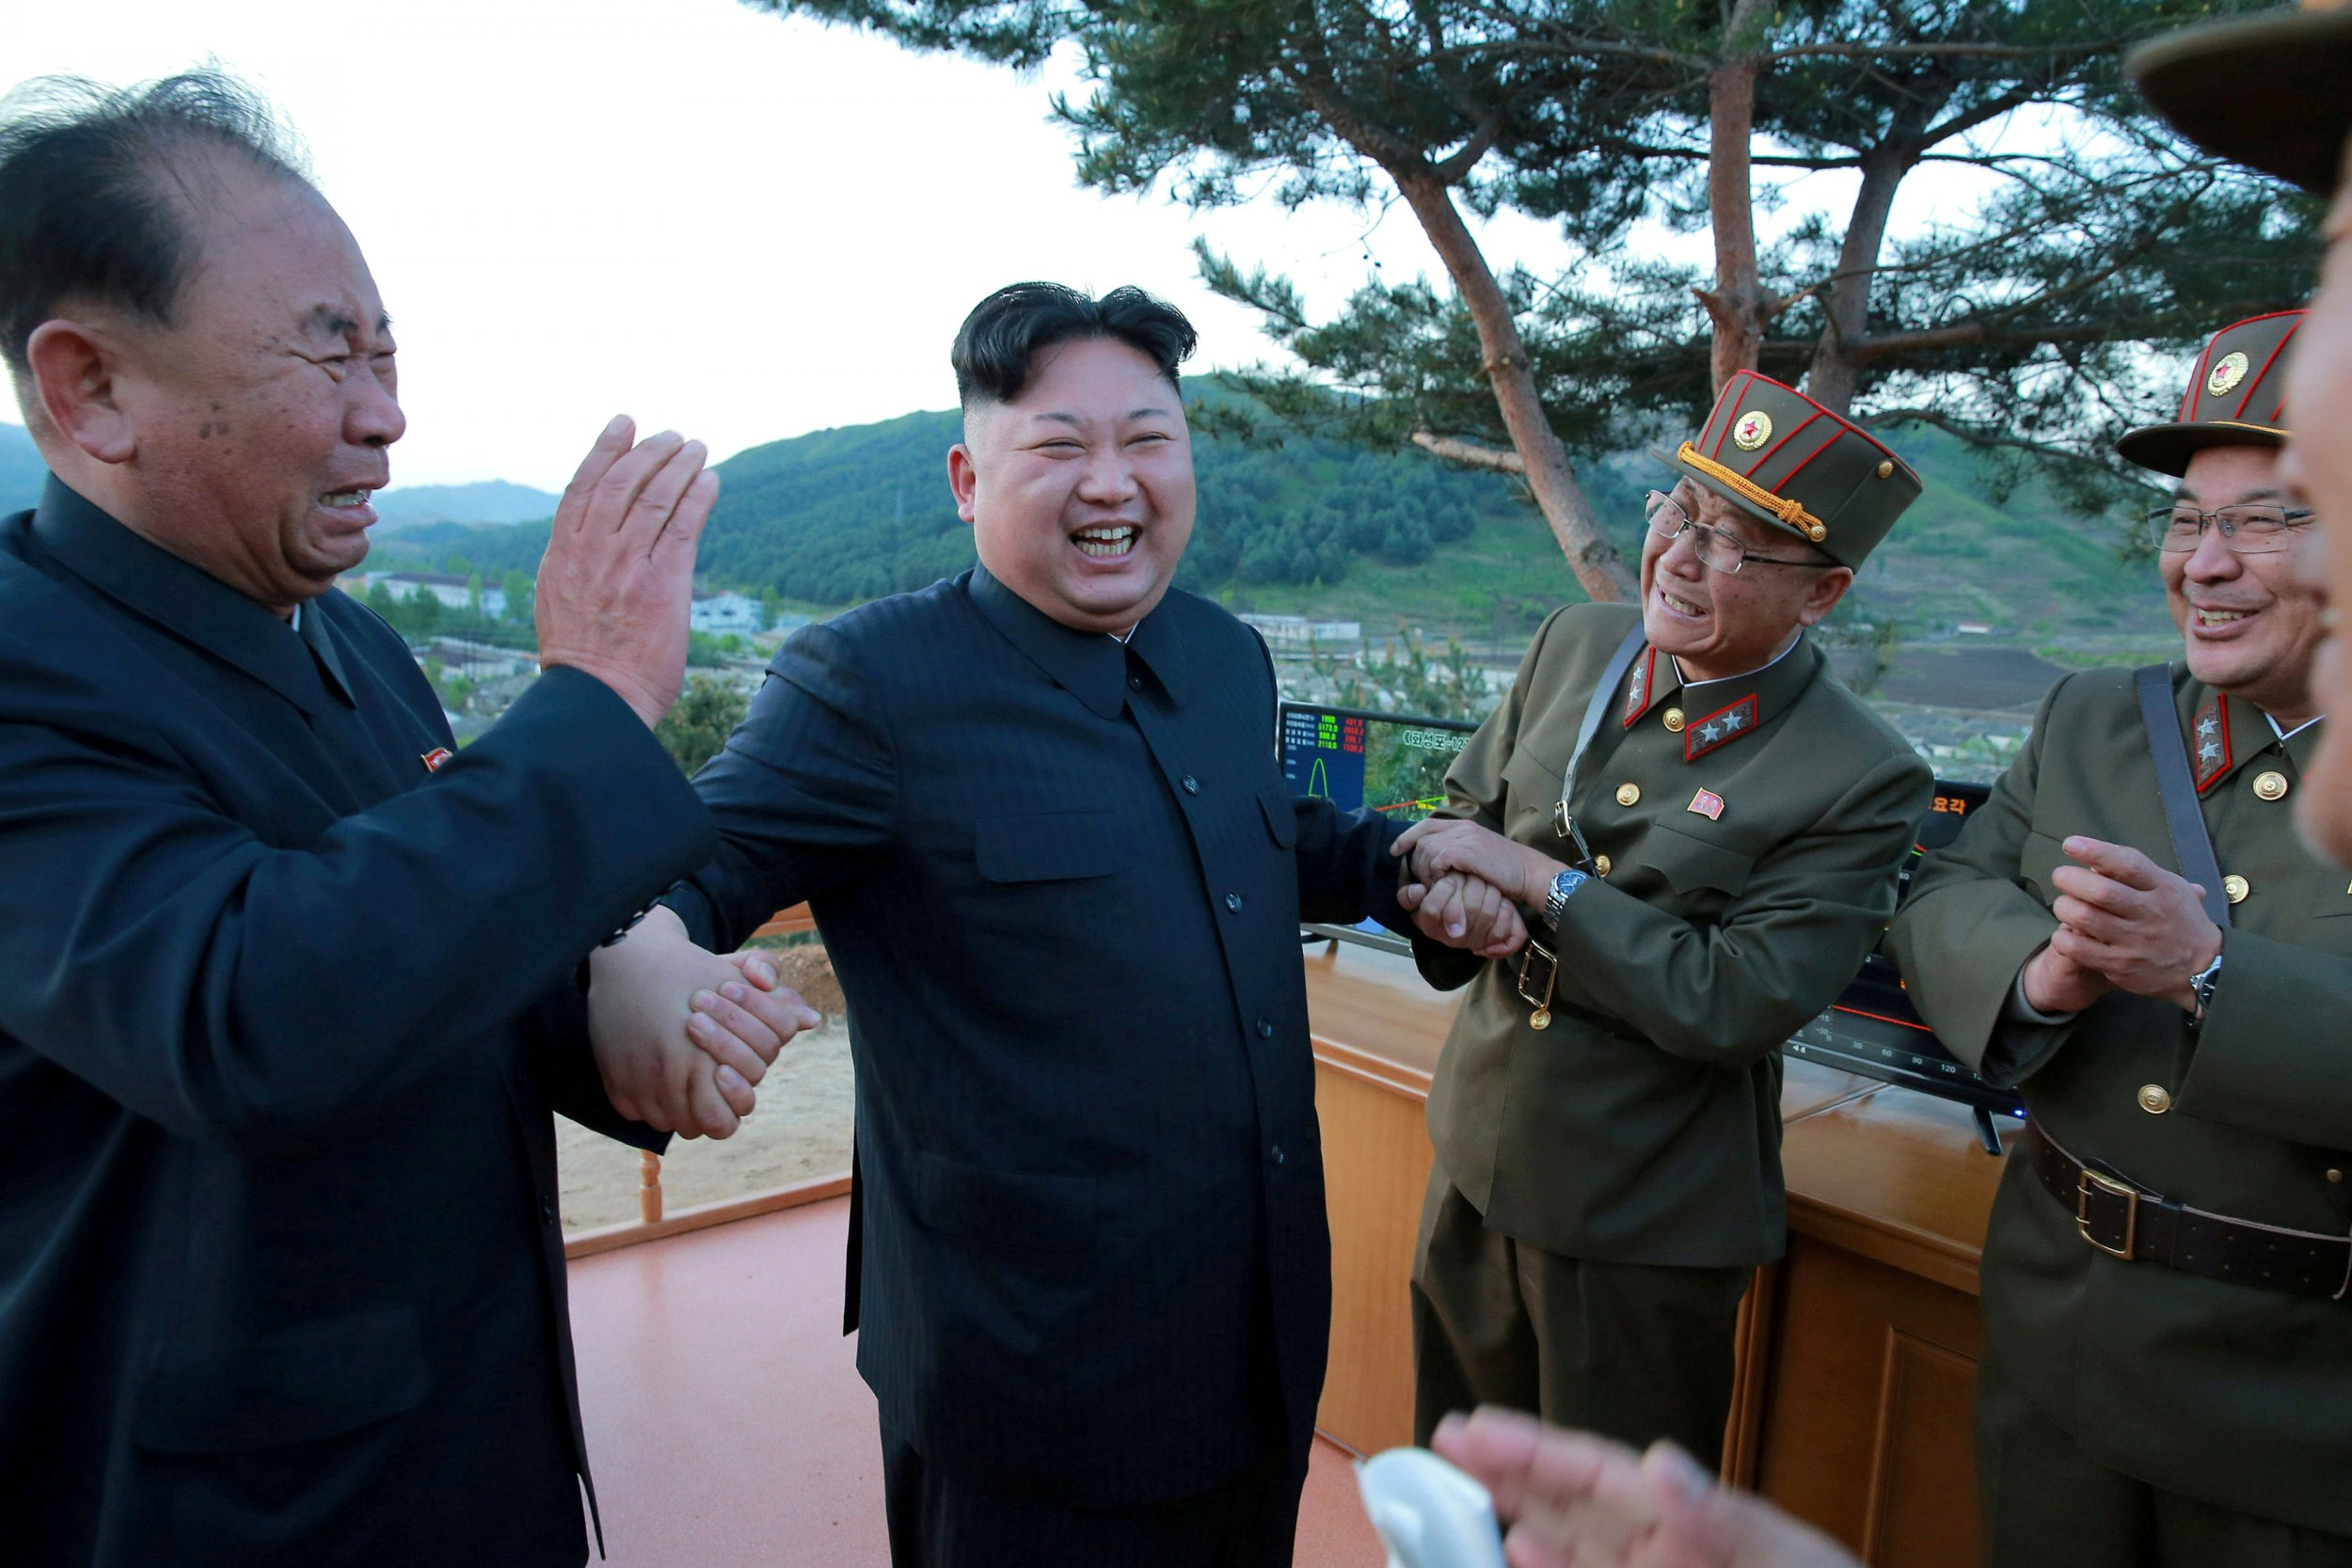 Often seen smiling with Kim Jong Un after successful missile launches, North Korea's power trio attracts interest